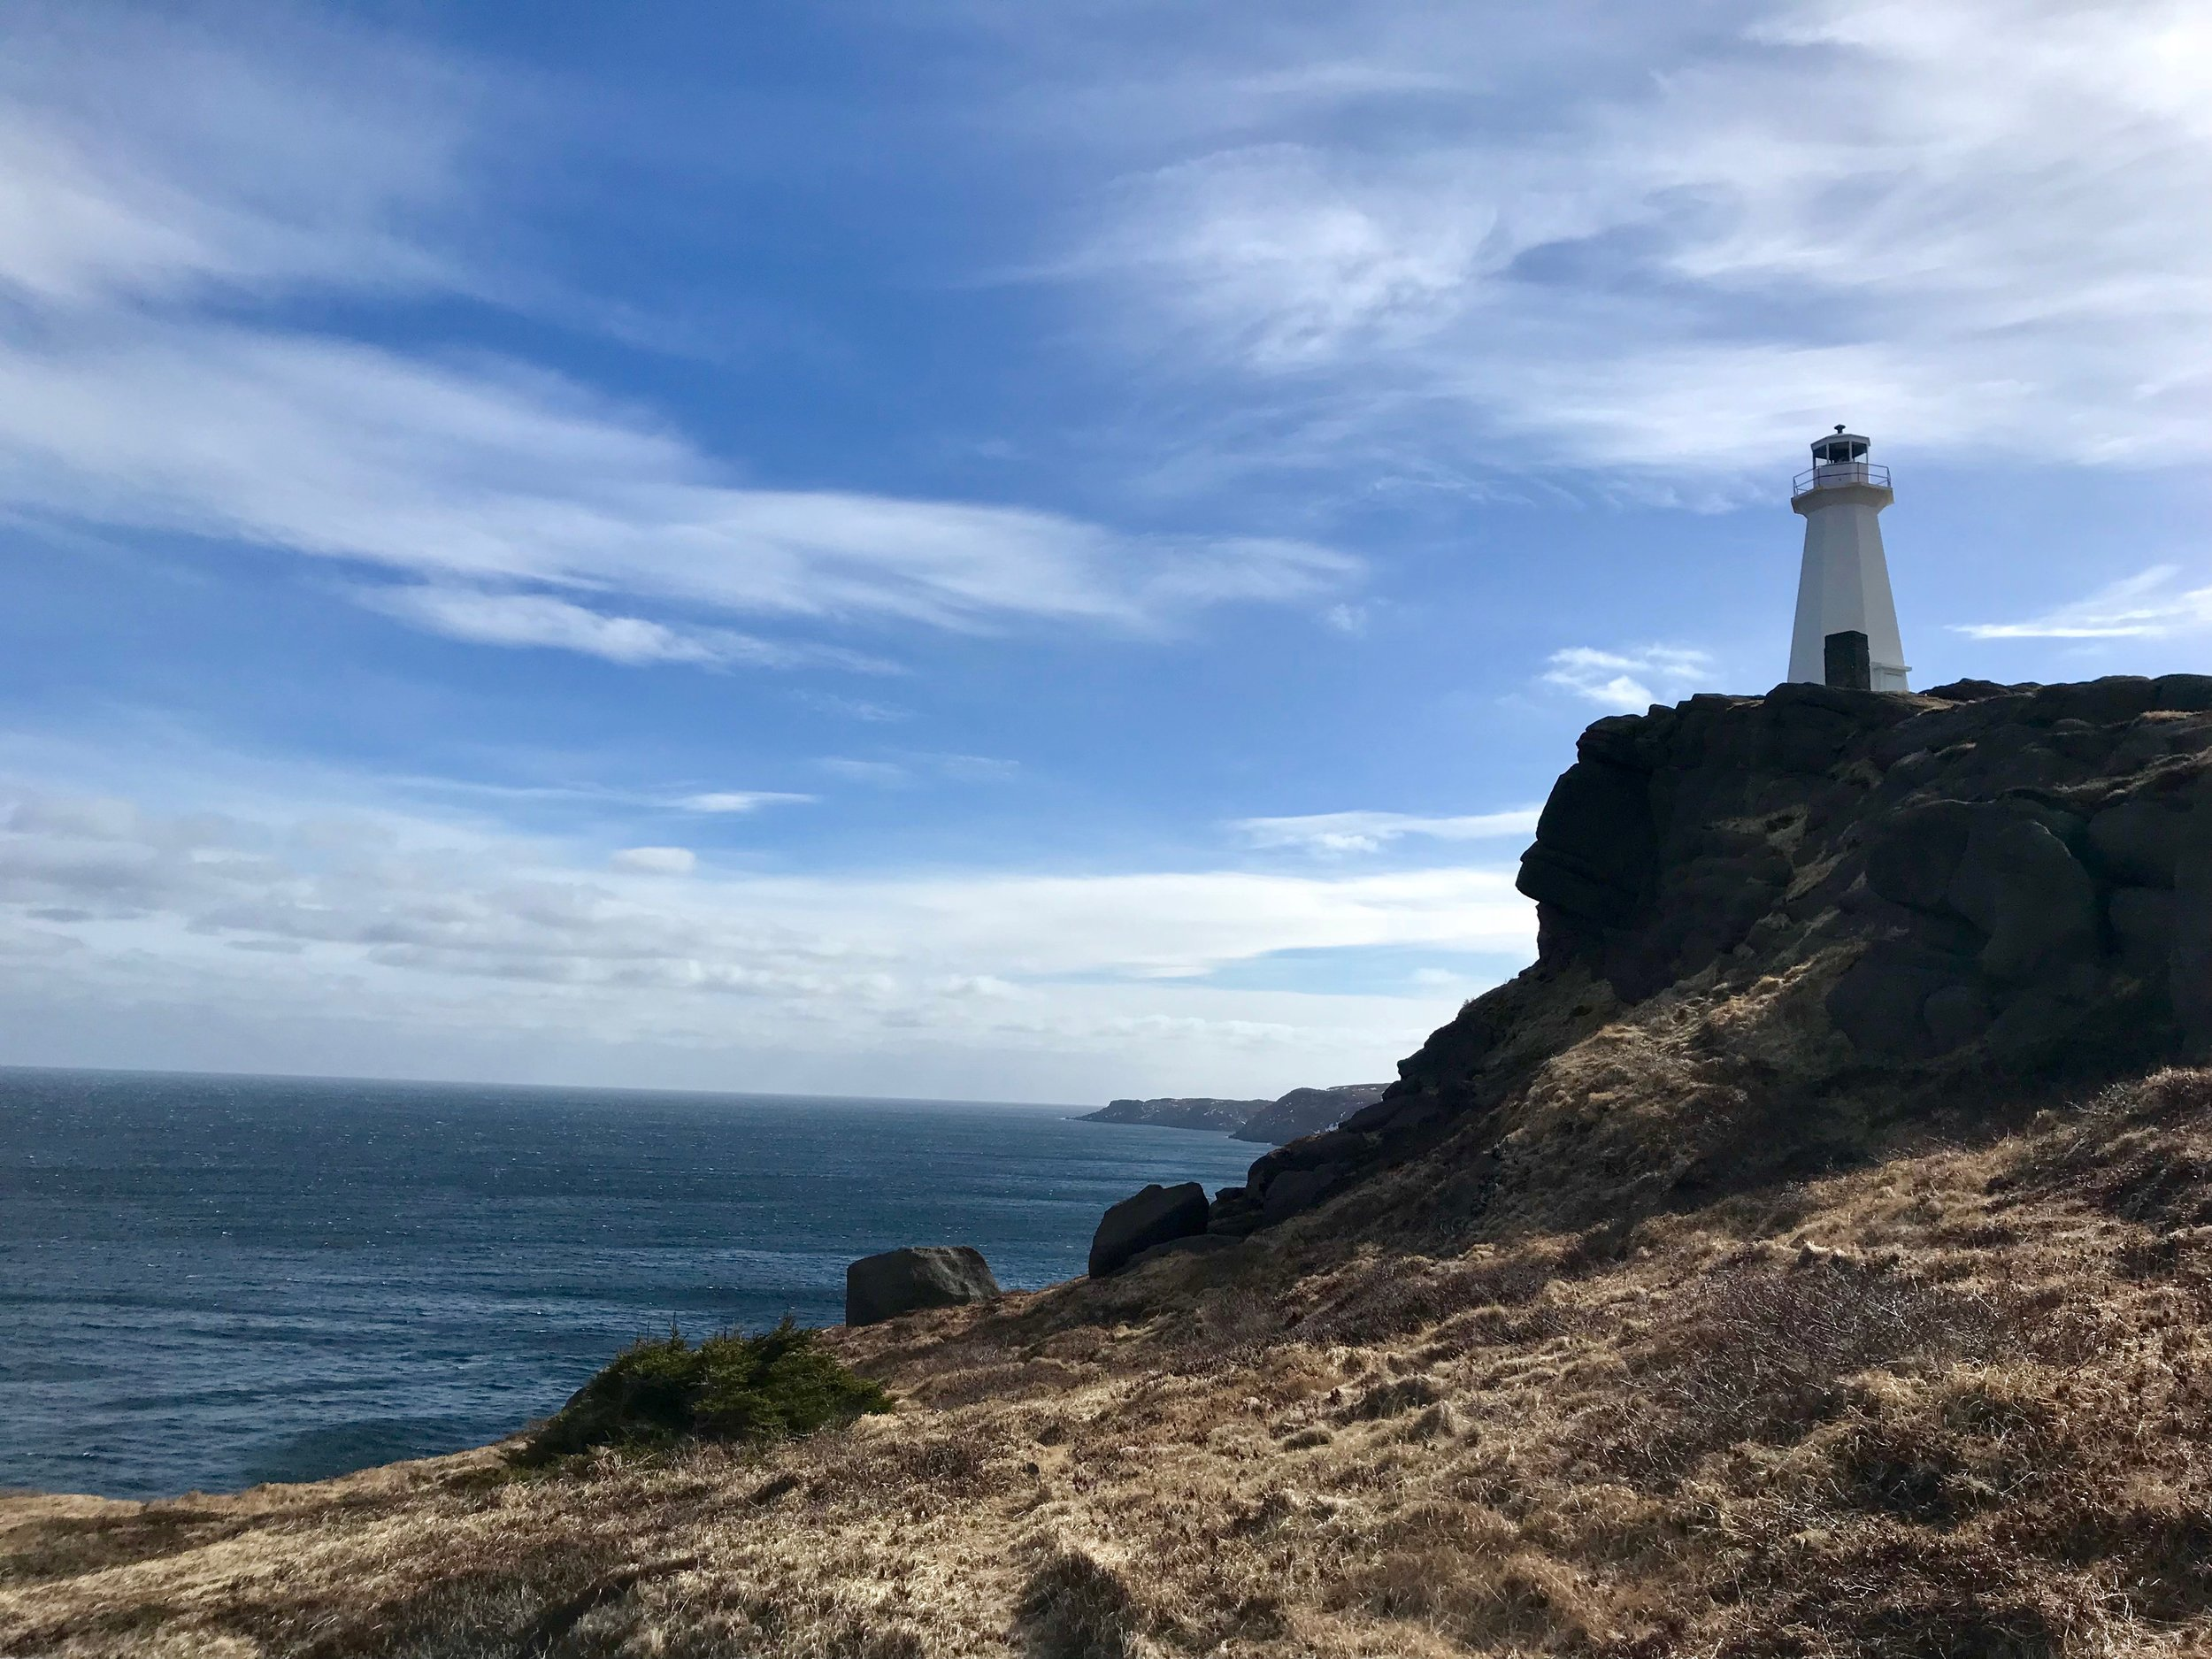 The light house at Cape Spear. The particular location is known as the eastern-most point in North America. Credit: Anna Lucchesi